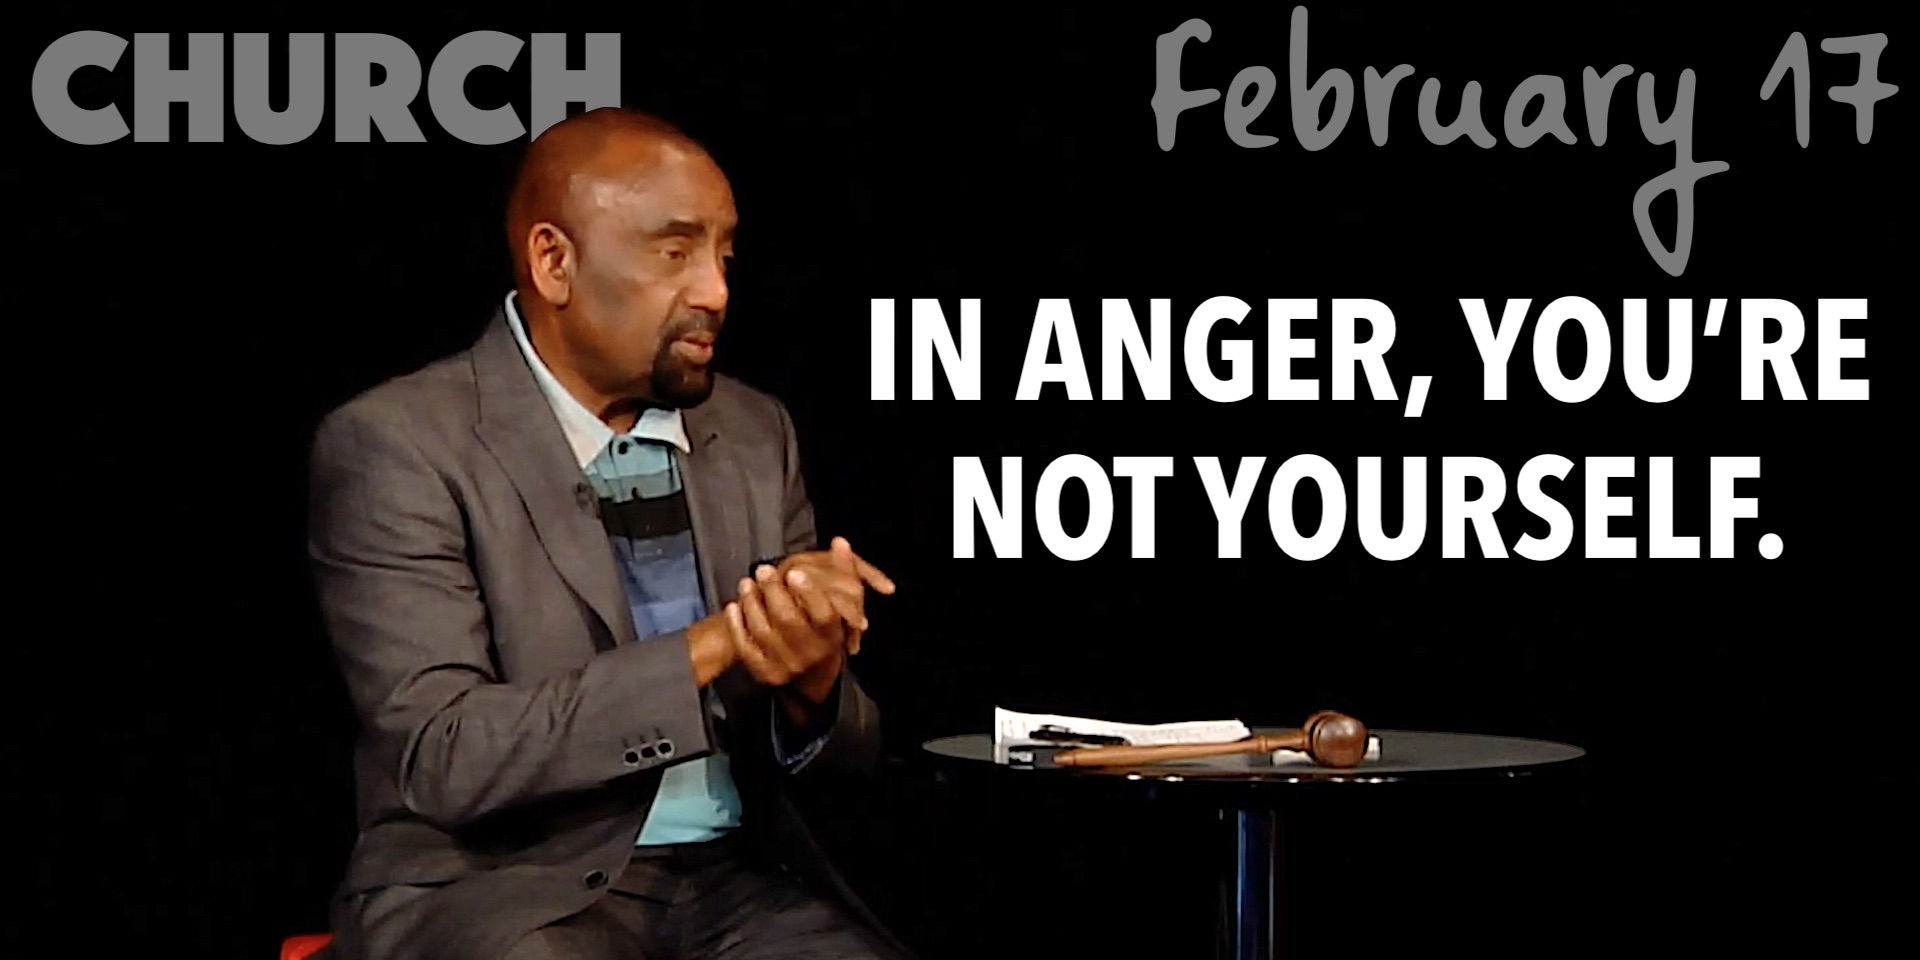 Angry Men & Women Are Like Their Mothers (Church, Feb 17, 2019)